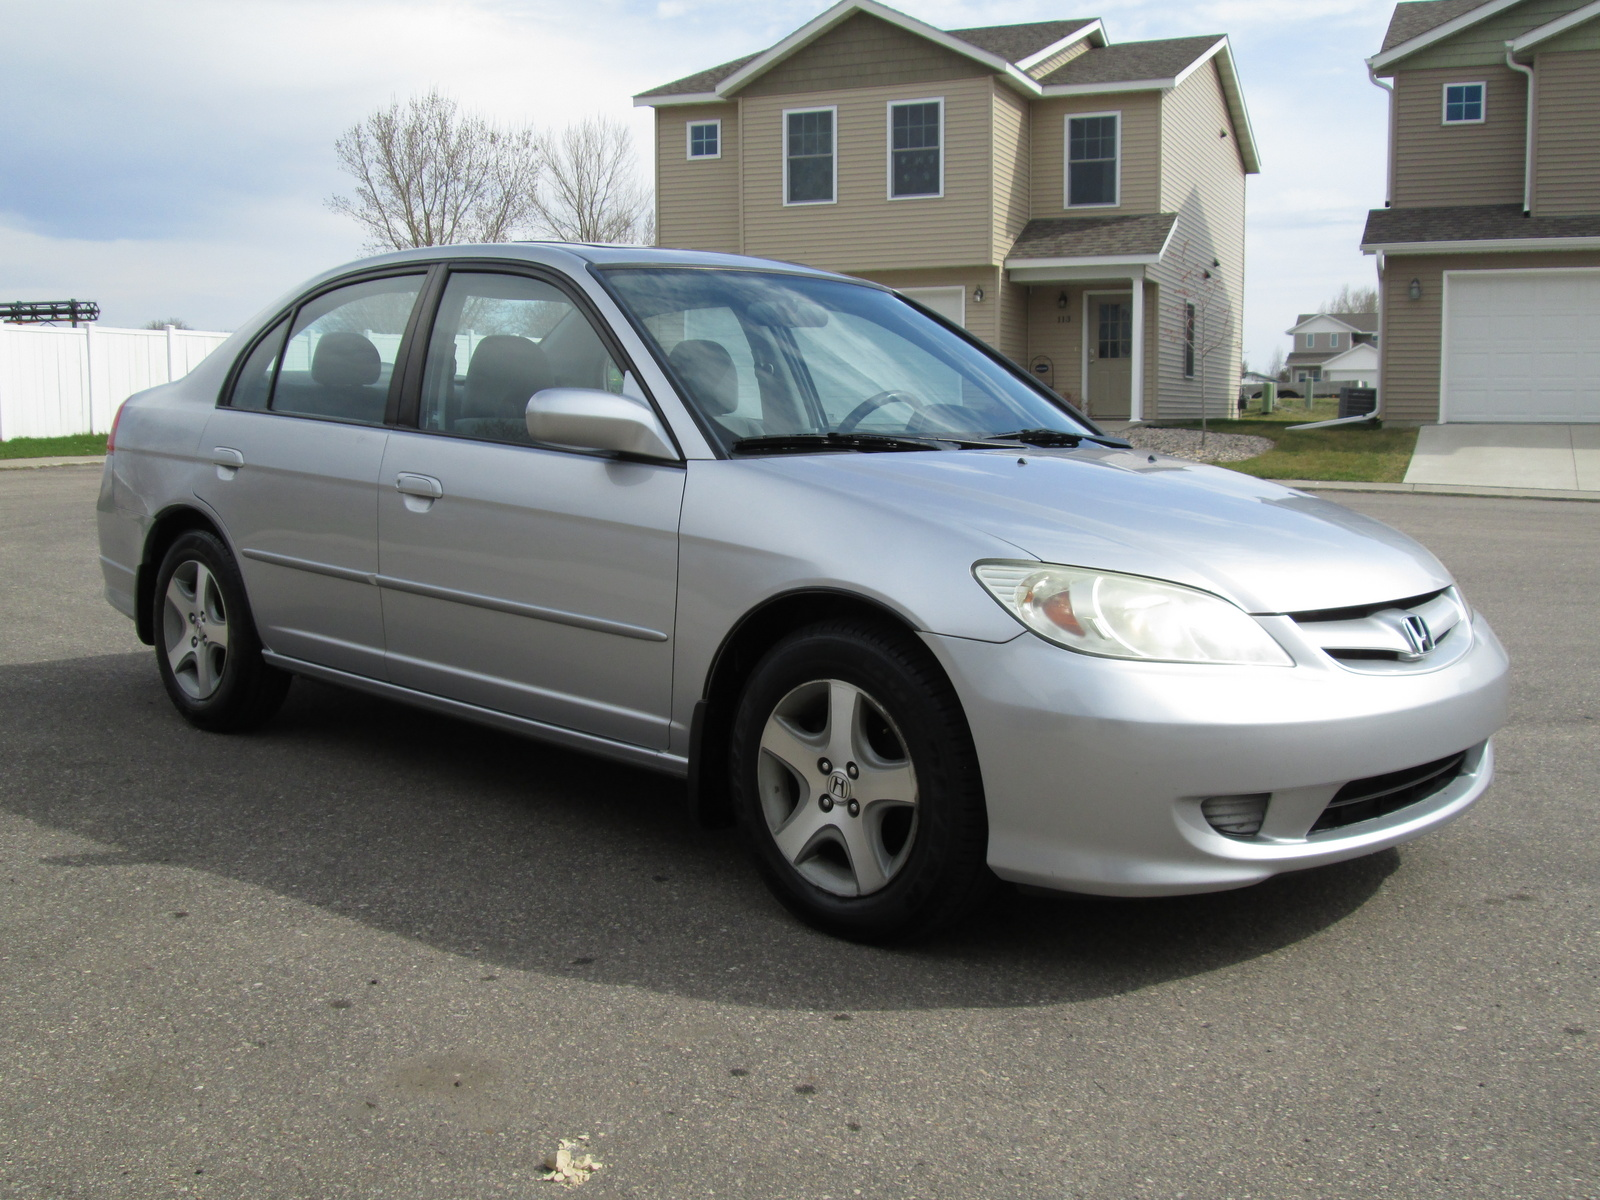 Used Honda Civic Si >> 2004 Honda Civic - Pictures - CarGurus